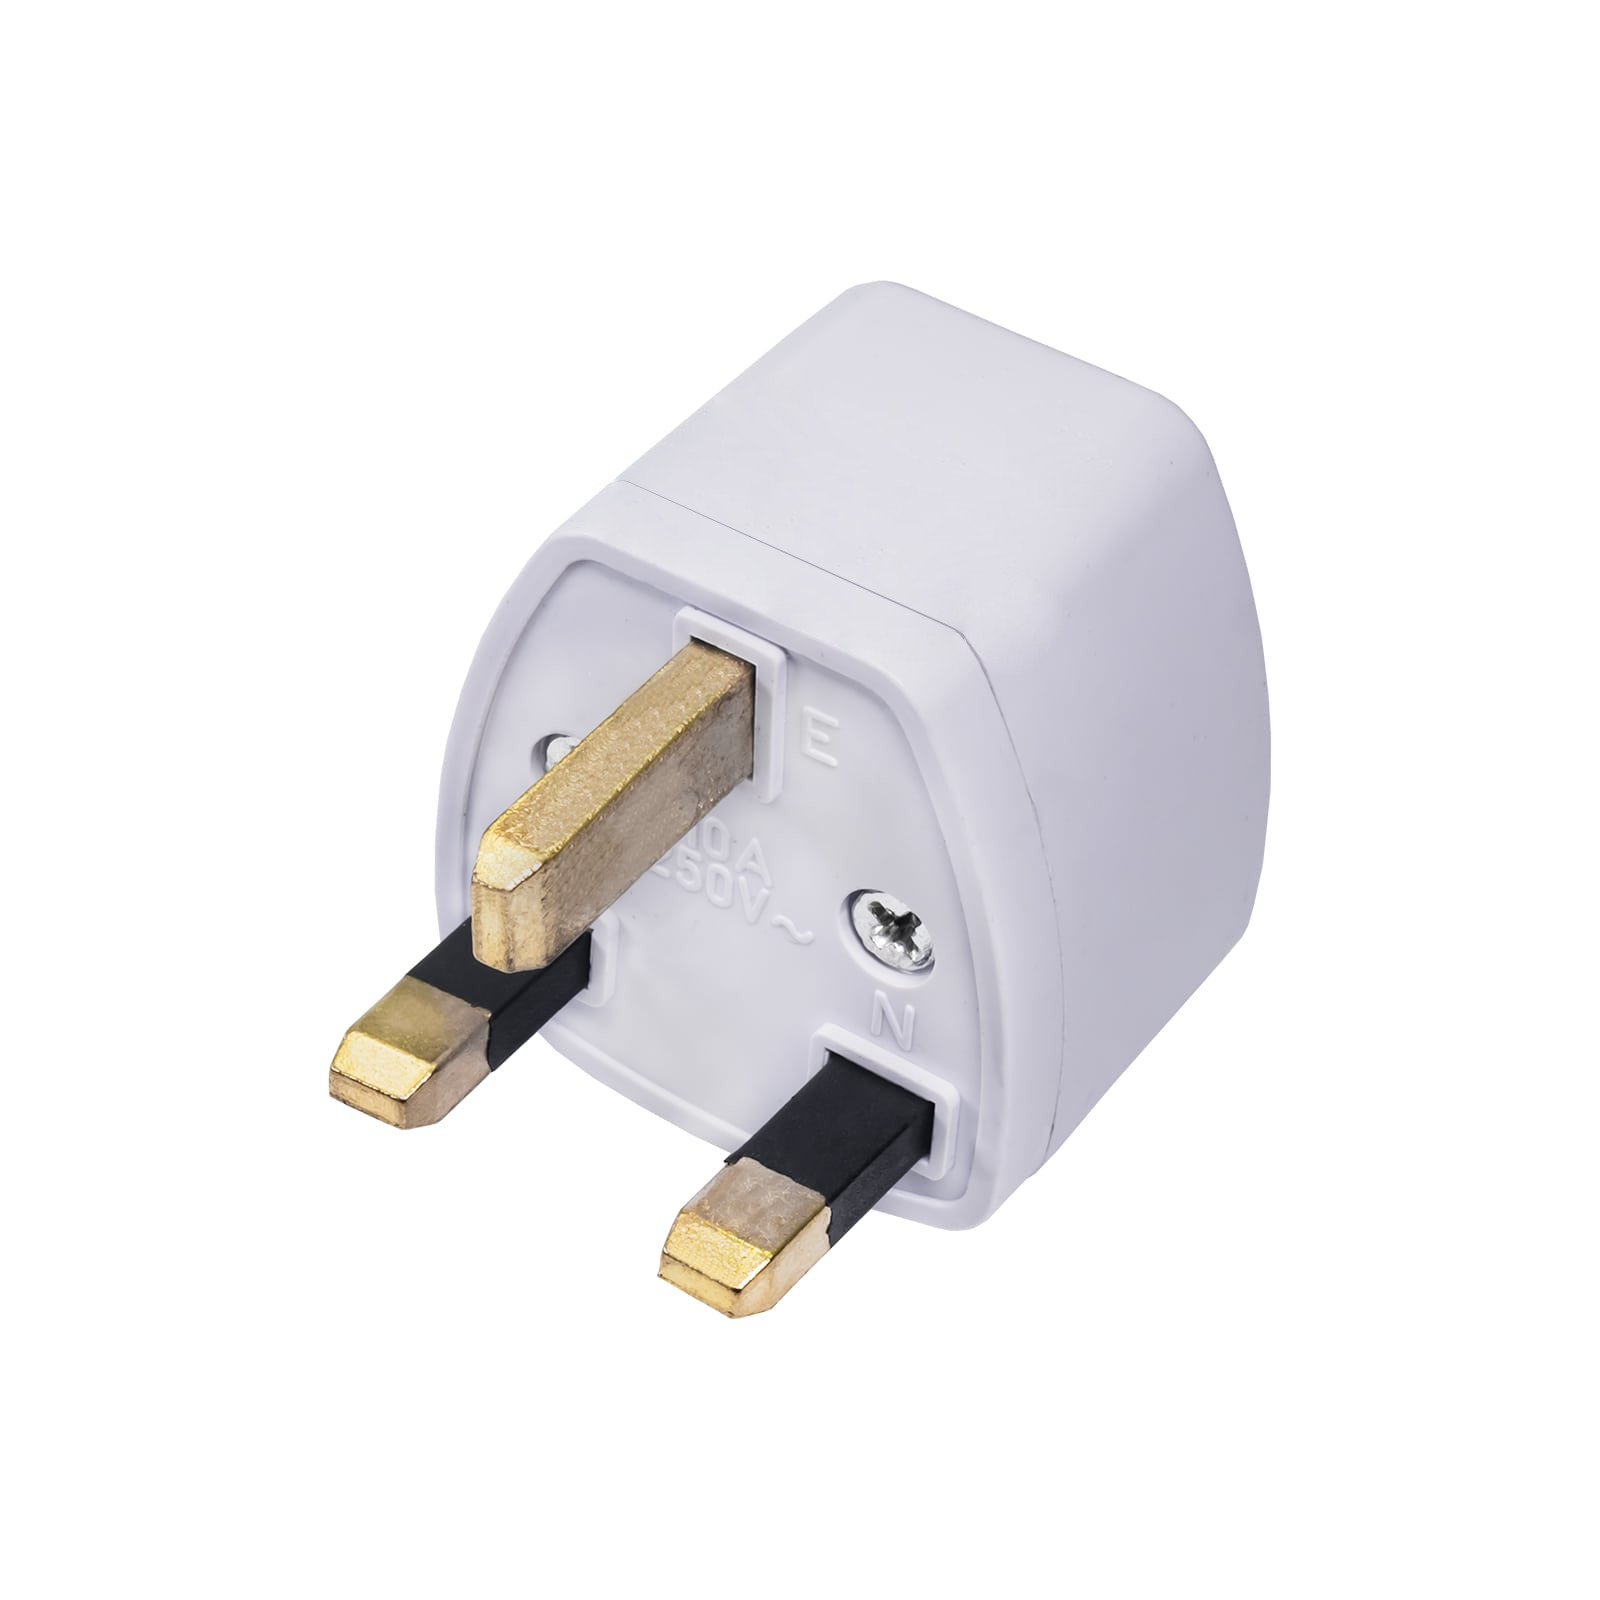 Main image Adapter US/AU/EU to UK AK-AD-59